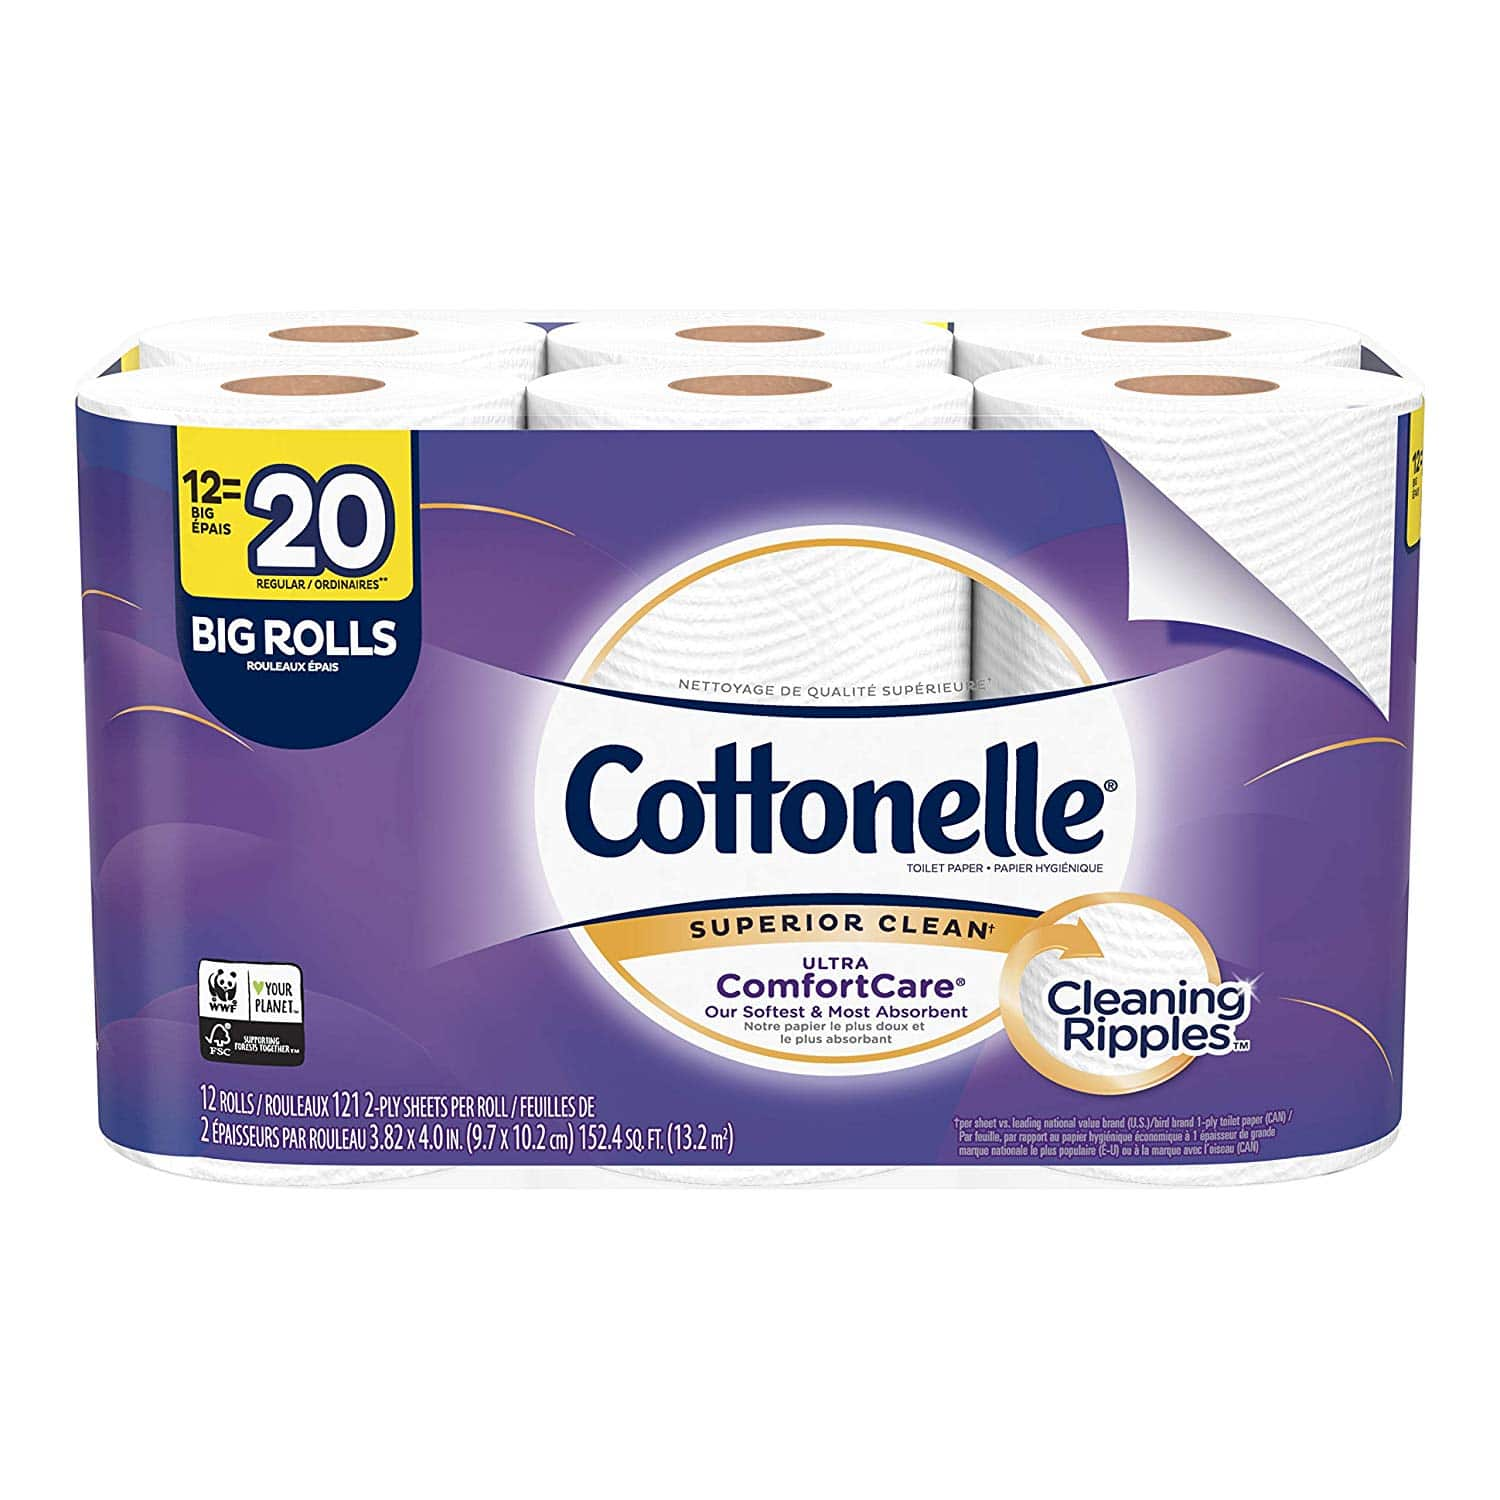 Cottonelle Ultra ComfortCare Toilet Paper, Soft Bath Tissue, Septic-Safe, 12 Big Rolls $6